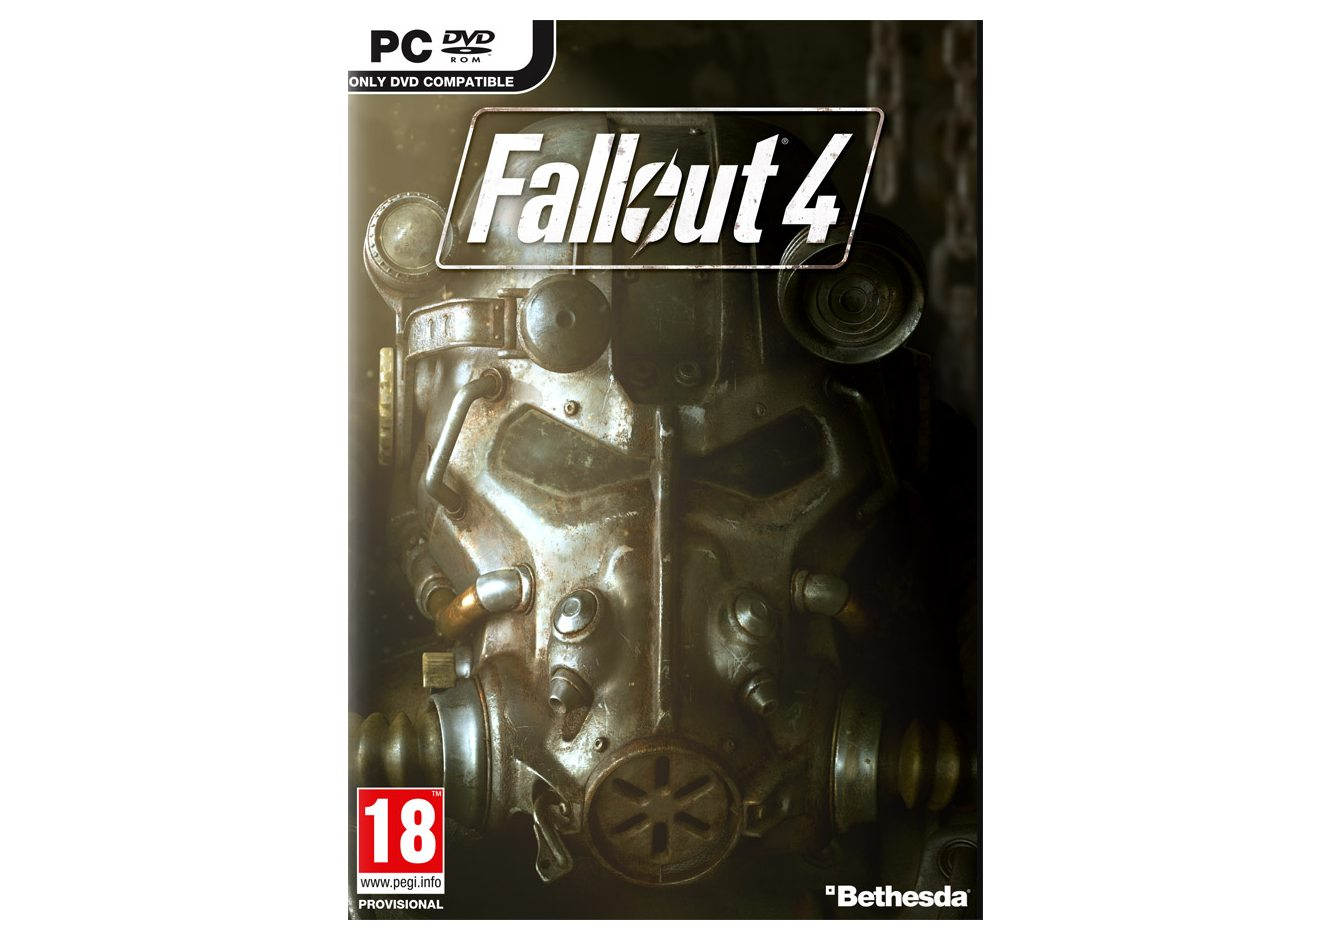 http://gameclub.by/images/catalog/pc/games/pc-fallout-4/209854759.jpg